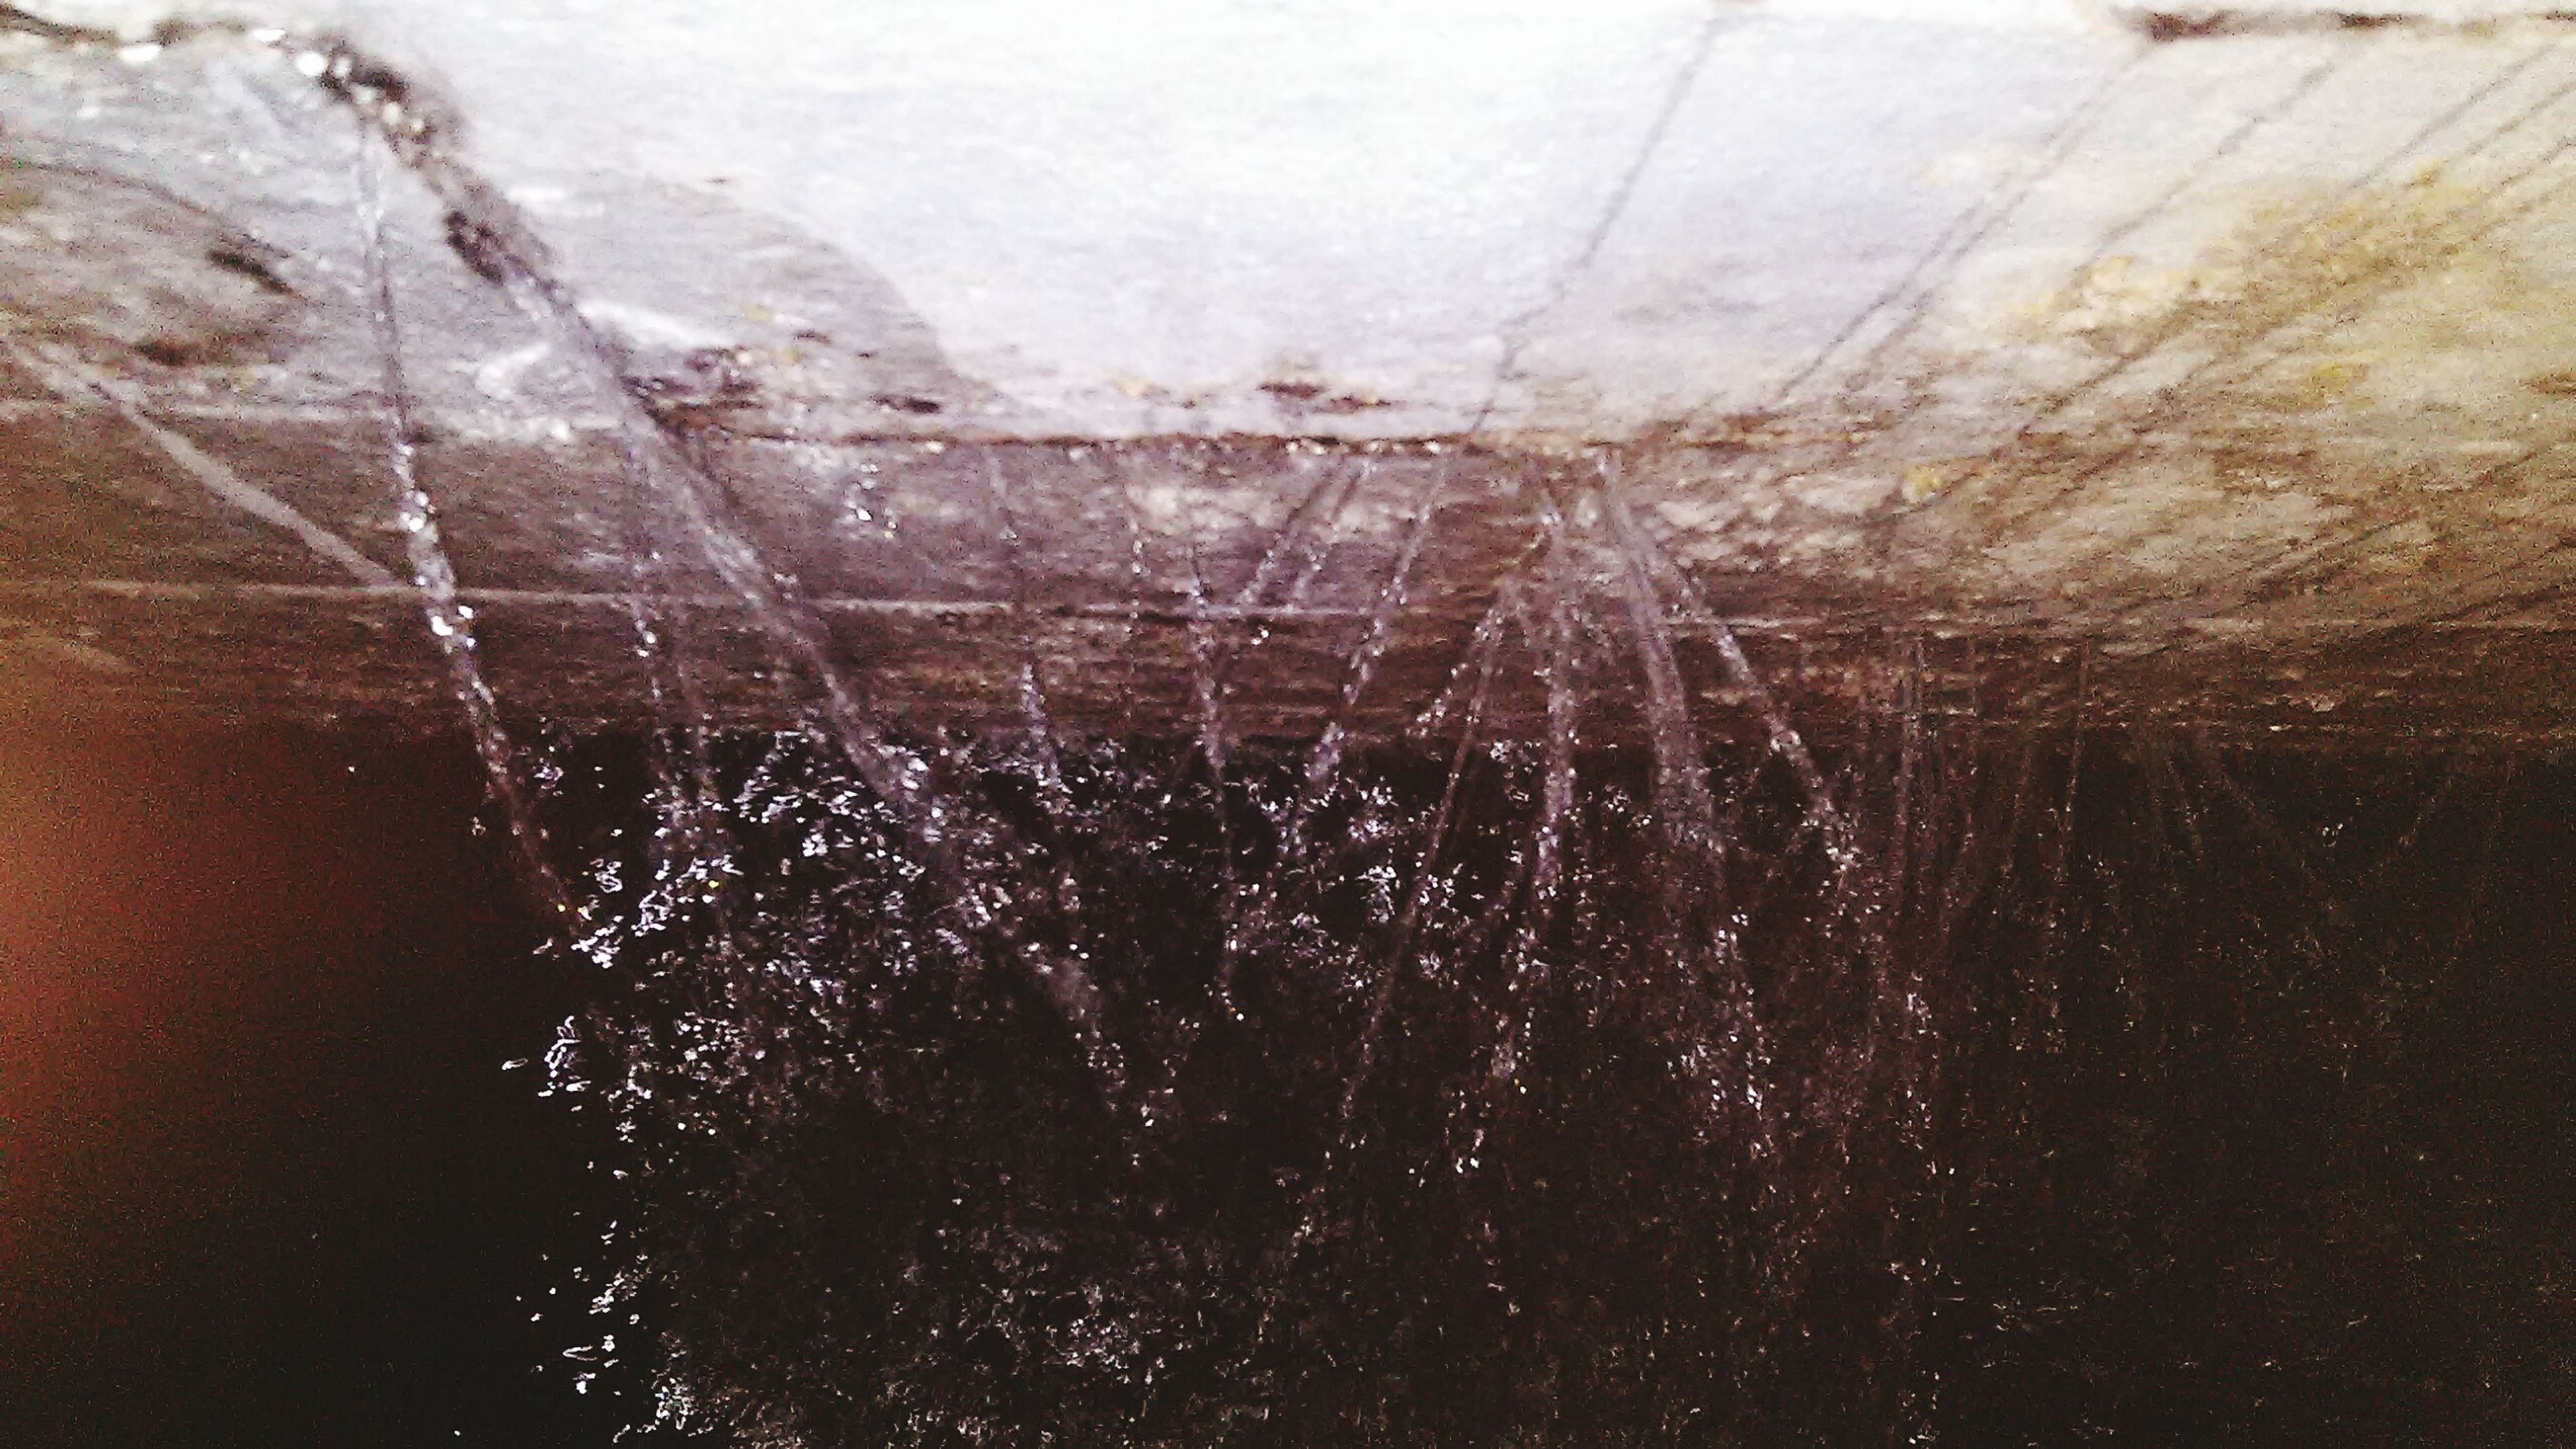 water, full frame, indoors, backgrounds, textured, transparent, window, wet, high angle view, pattern, glass - material, close-up, day, no people, wall - building feature, nature, reflection, season, built structure, rain